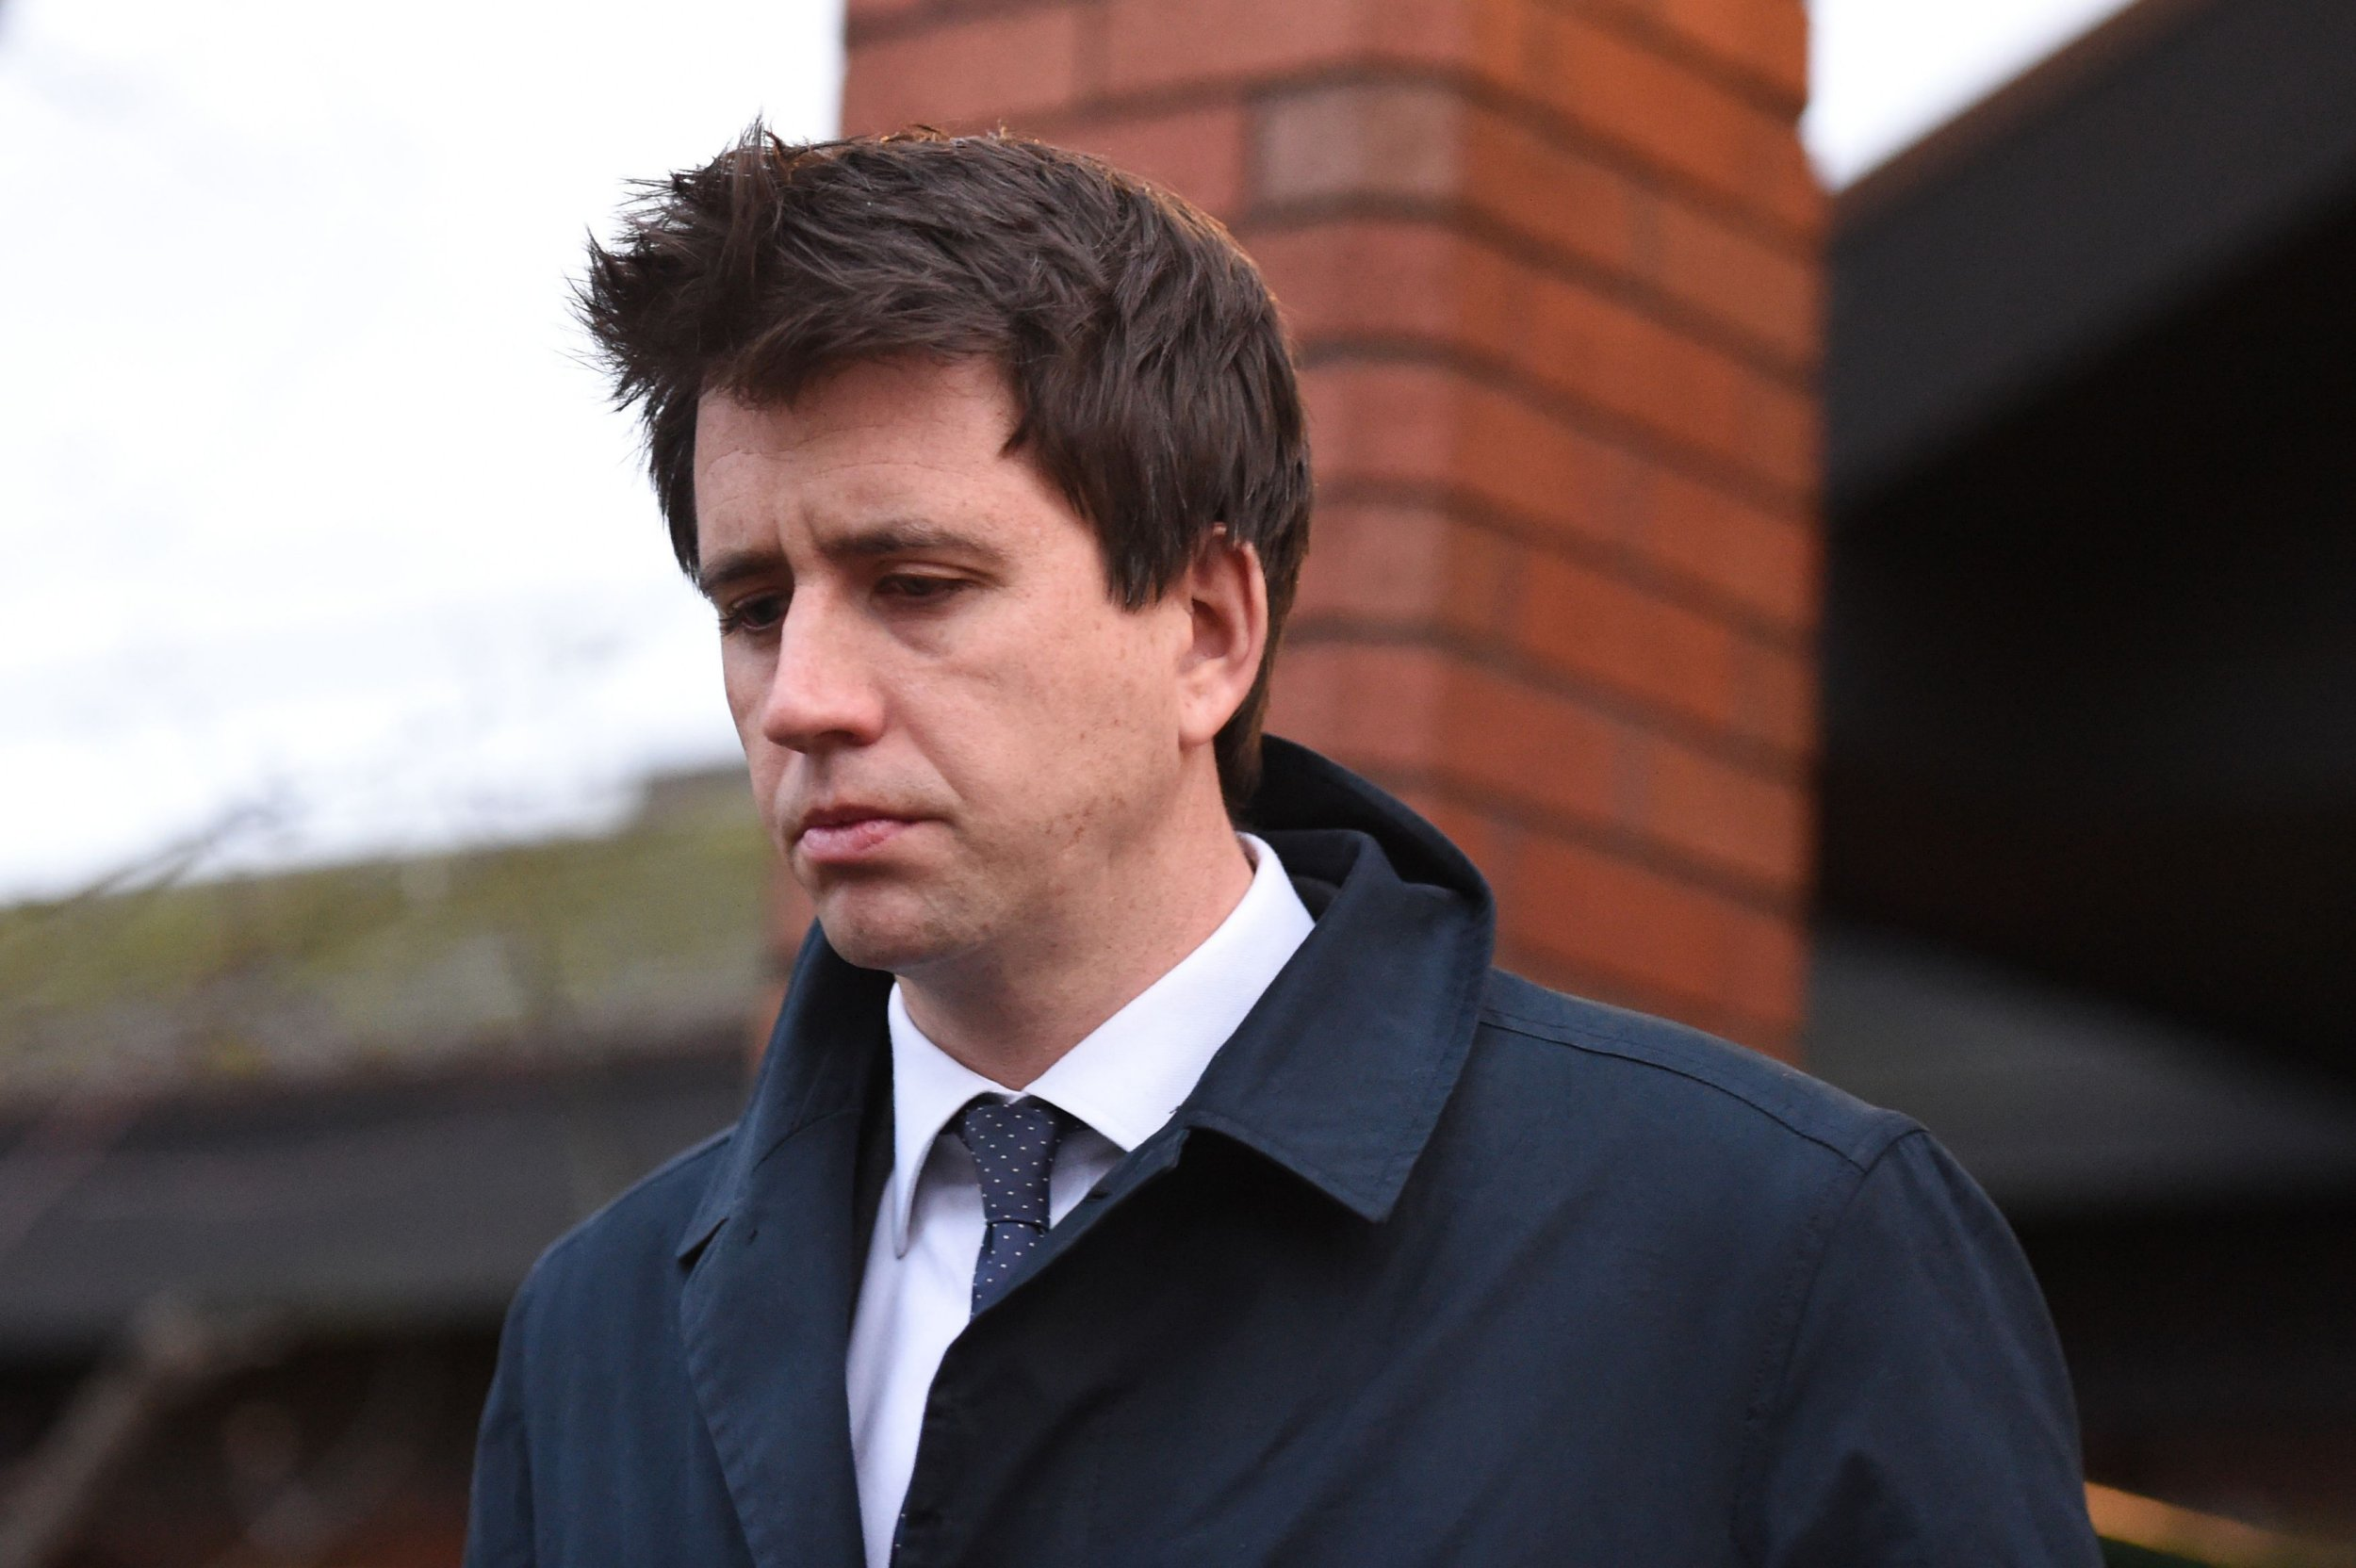 File photo dated 03/01/17 of Alastair Main leaving Wimbledon Magistrates Court, as the married City lawyer has been spared jail after being found guilty of pouring beer over a woman at a Christmas party, pulling up her skirt and repeatedly slapping her bottom. PRESS ASSOCIATION Photo. Issue date: Thursday January 26, 2017. See PA story COURTS Rower. Photo credit should read: Kirsty O'Connor/PA Wire